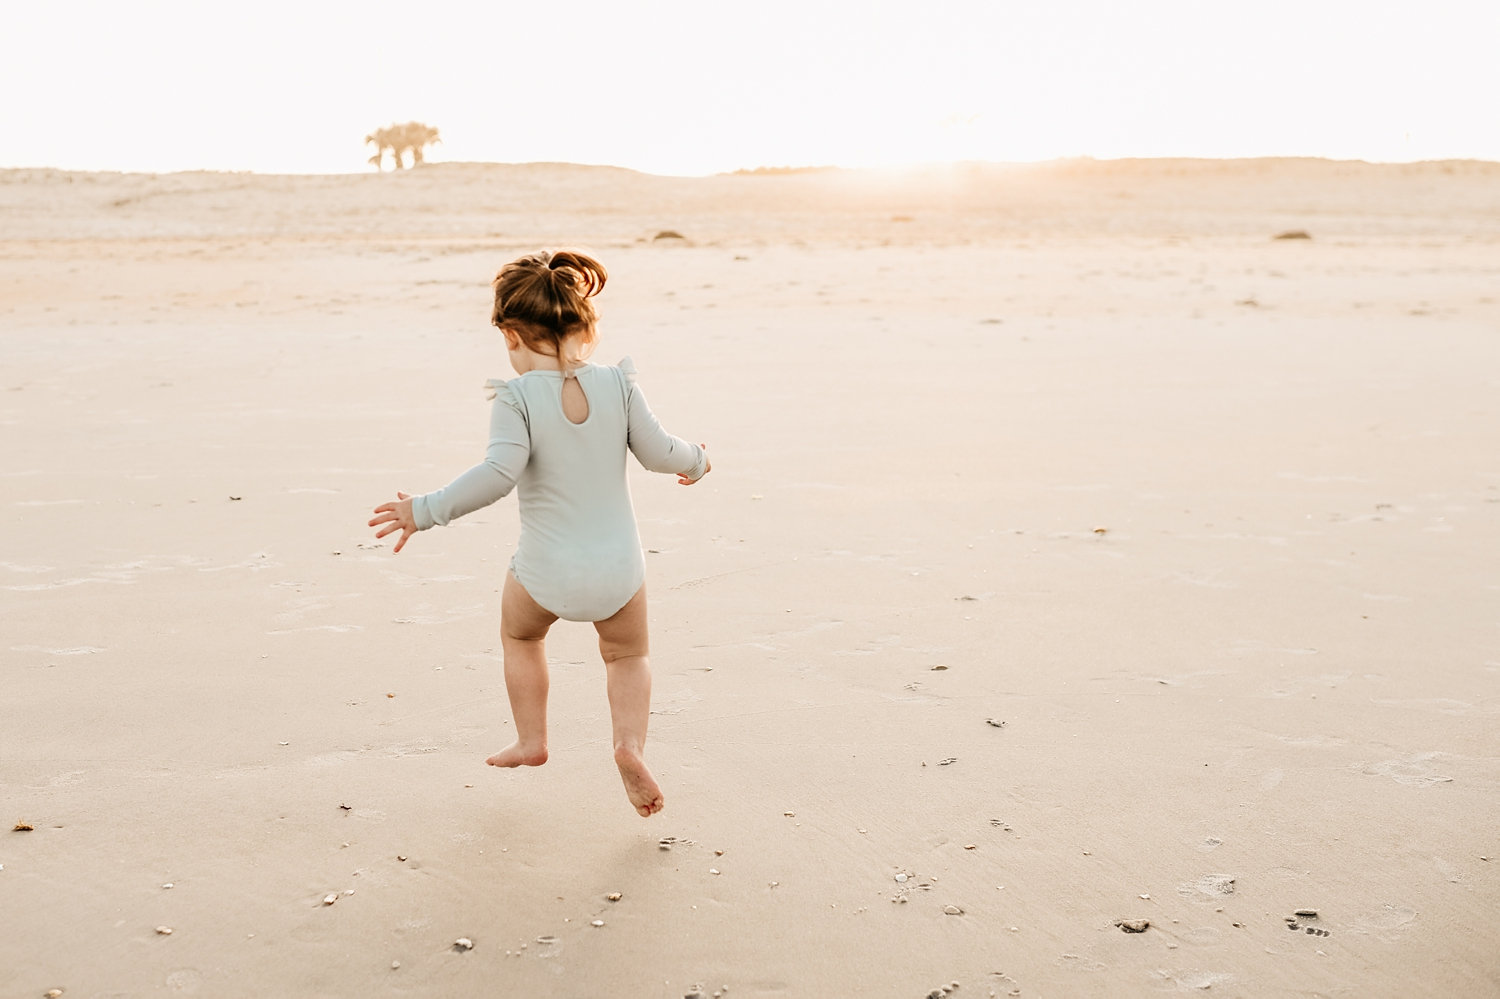 toddler girl jumping in the sand on the beach, Florida, Ryaphotos